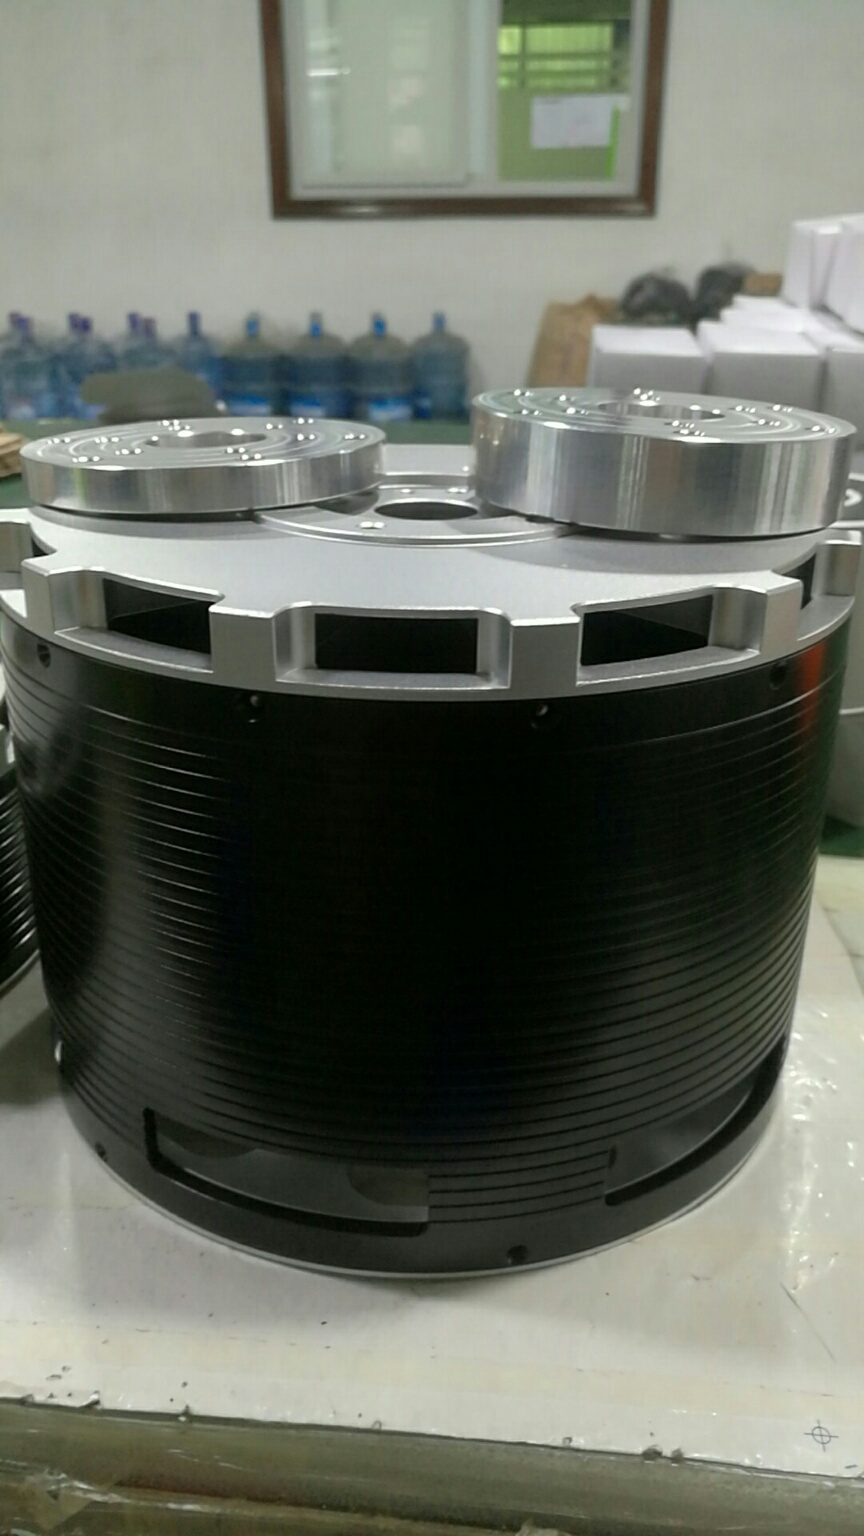 MP154120 50KW brushless Halbach Array motor